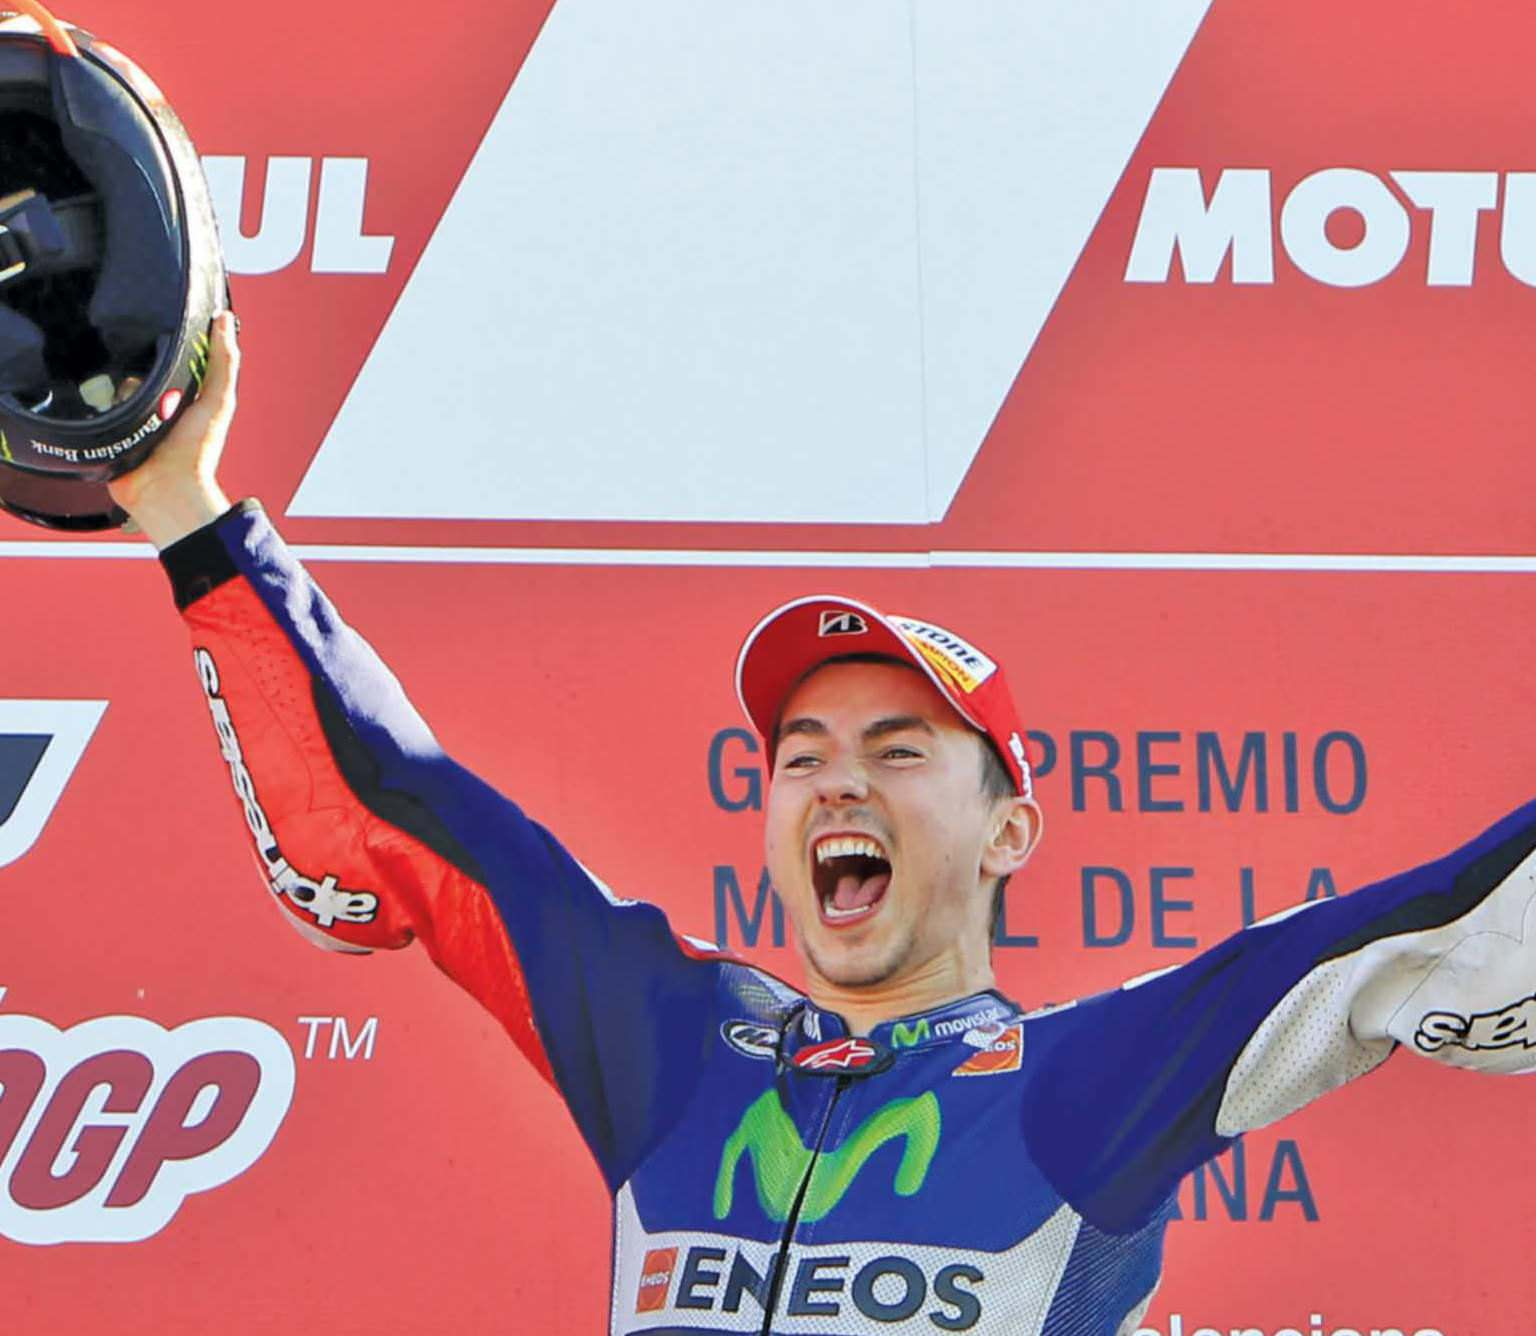 MotoGP 2015: From Stunning Performances To Scarring Controversies